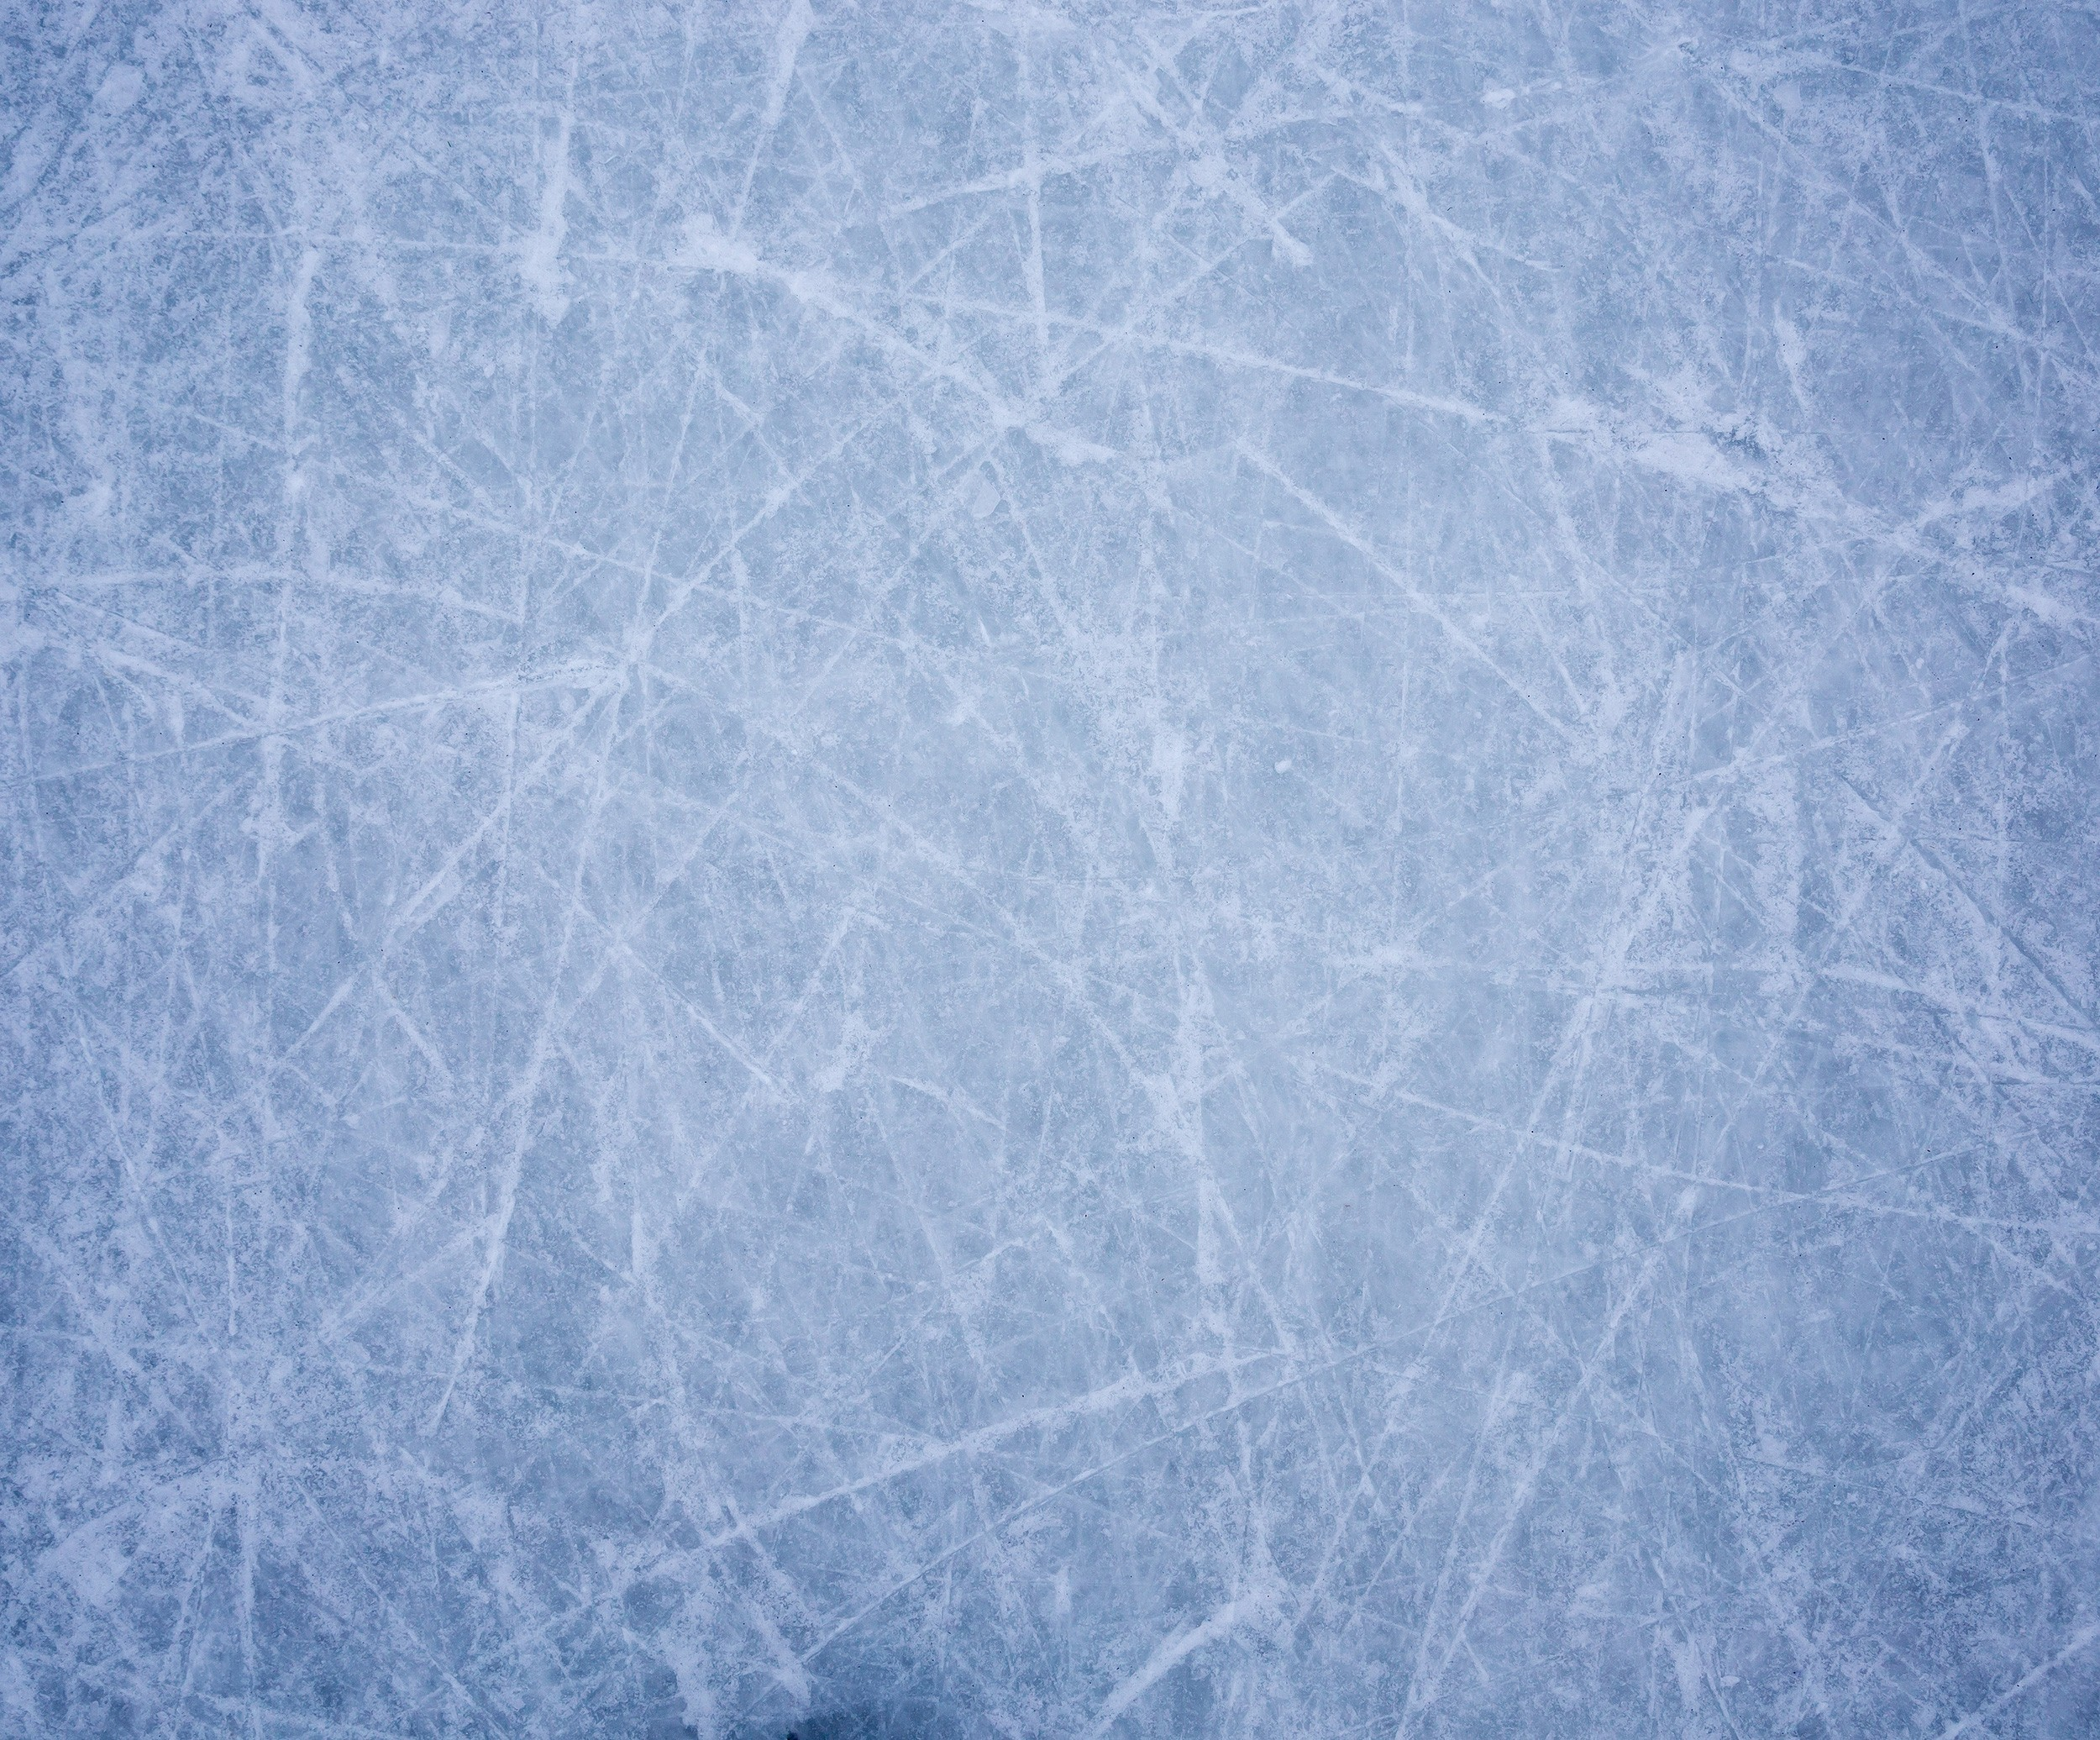 Hockey Rink Iphone Wallpaper Ice Background 183 ① Download Free Amazing Full Hd